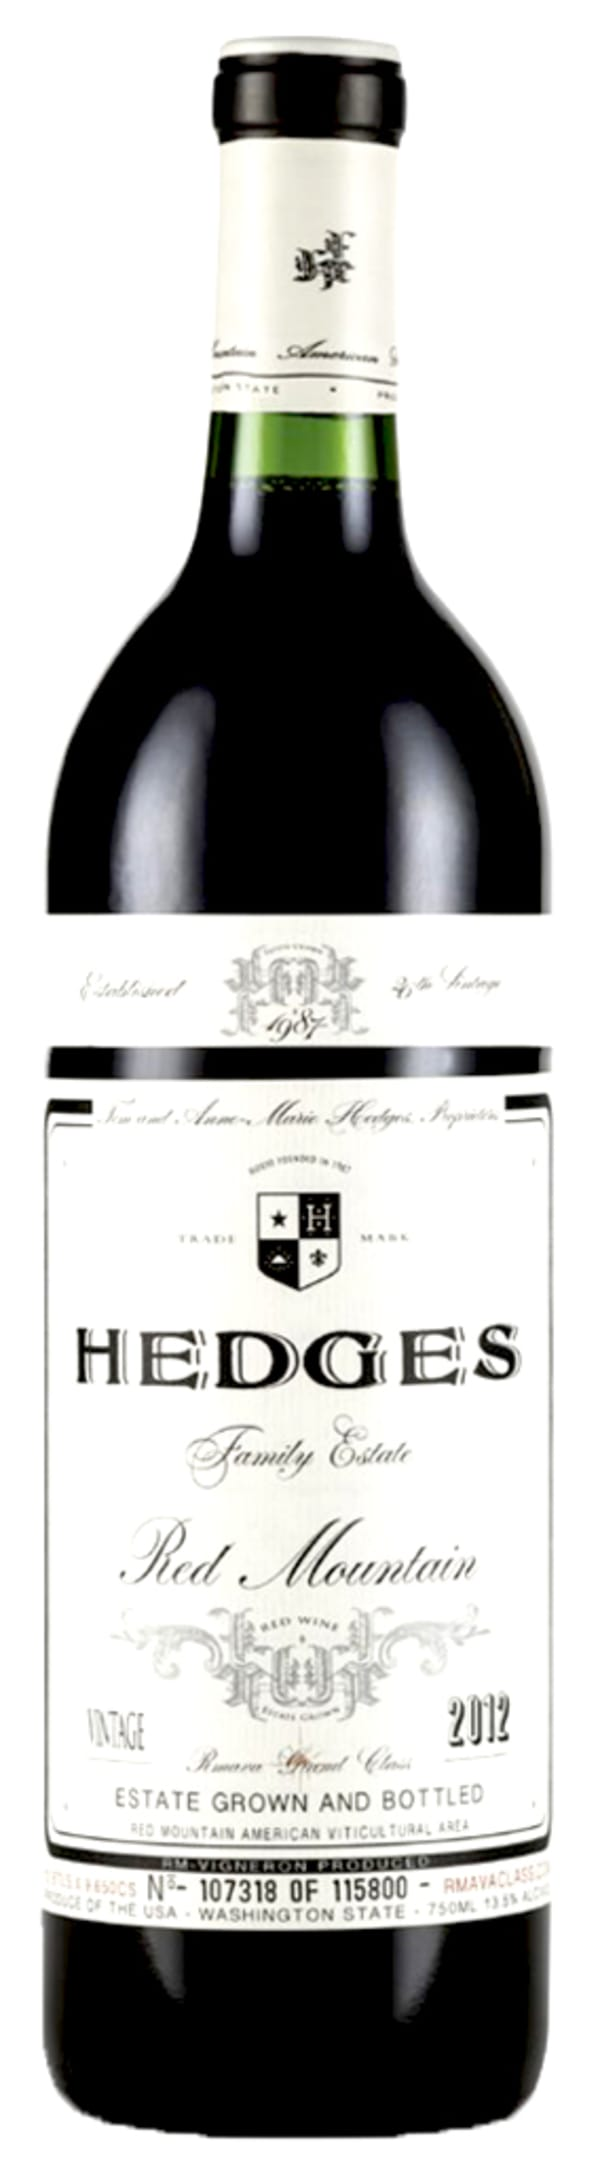 Hedges Red Mountain 2012